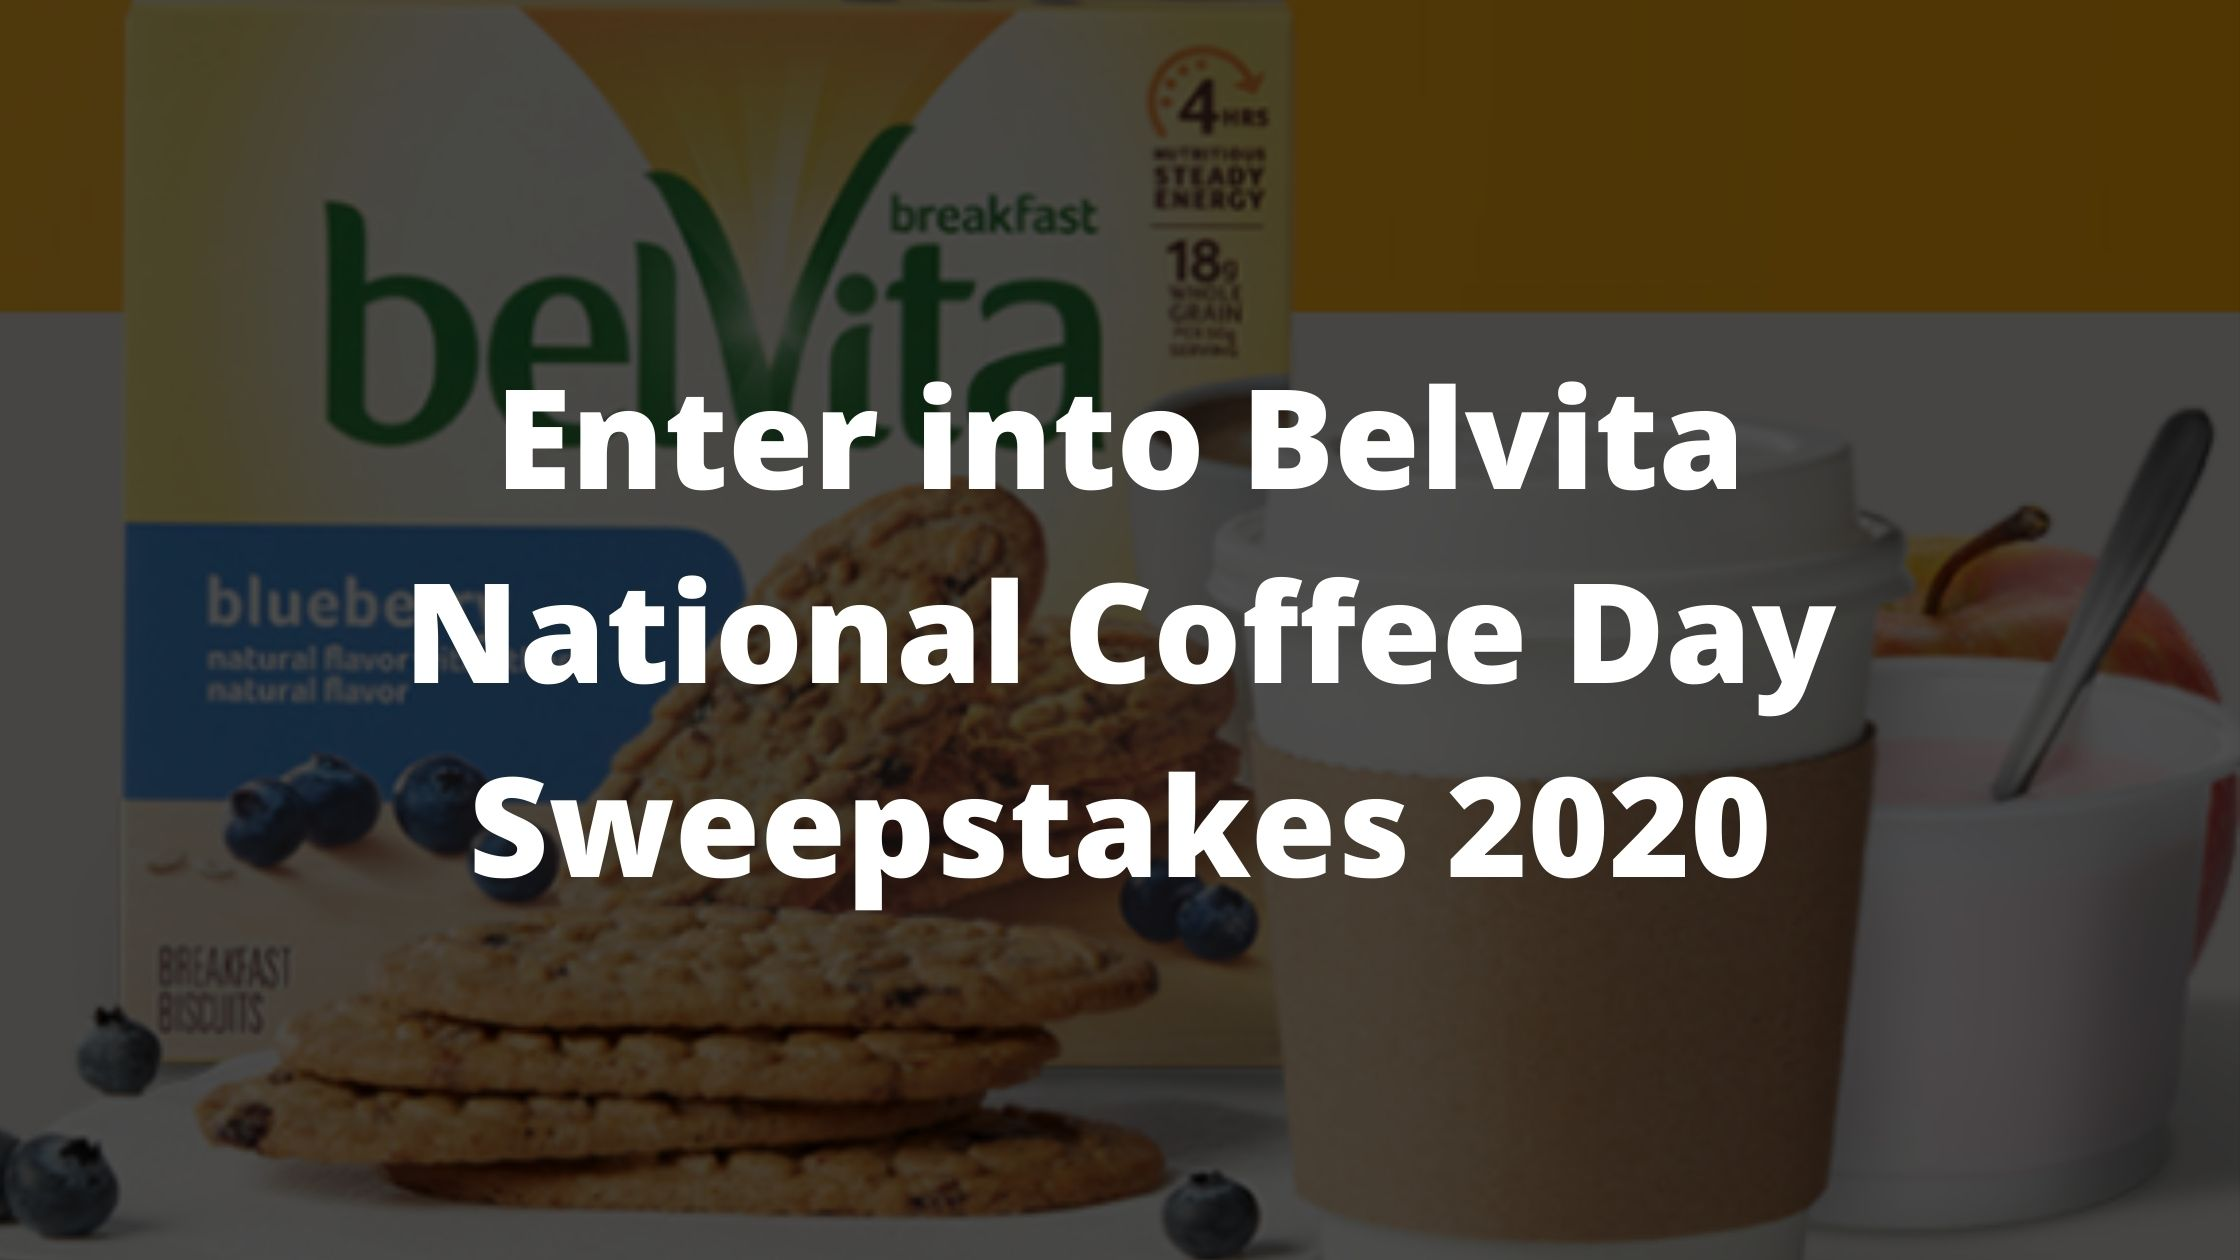 Belvita National Coffee Day Sweepstakes